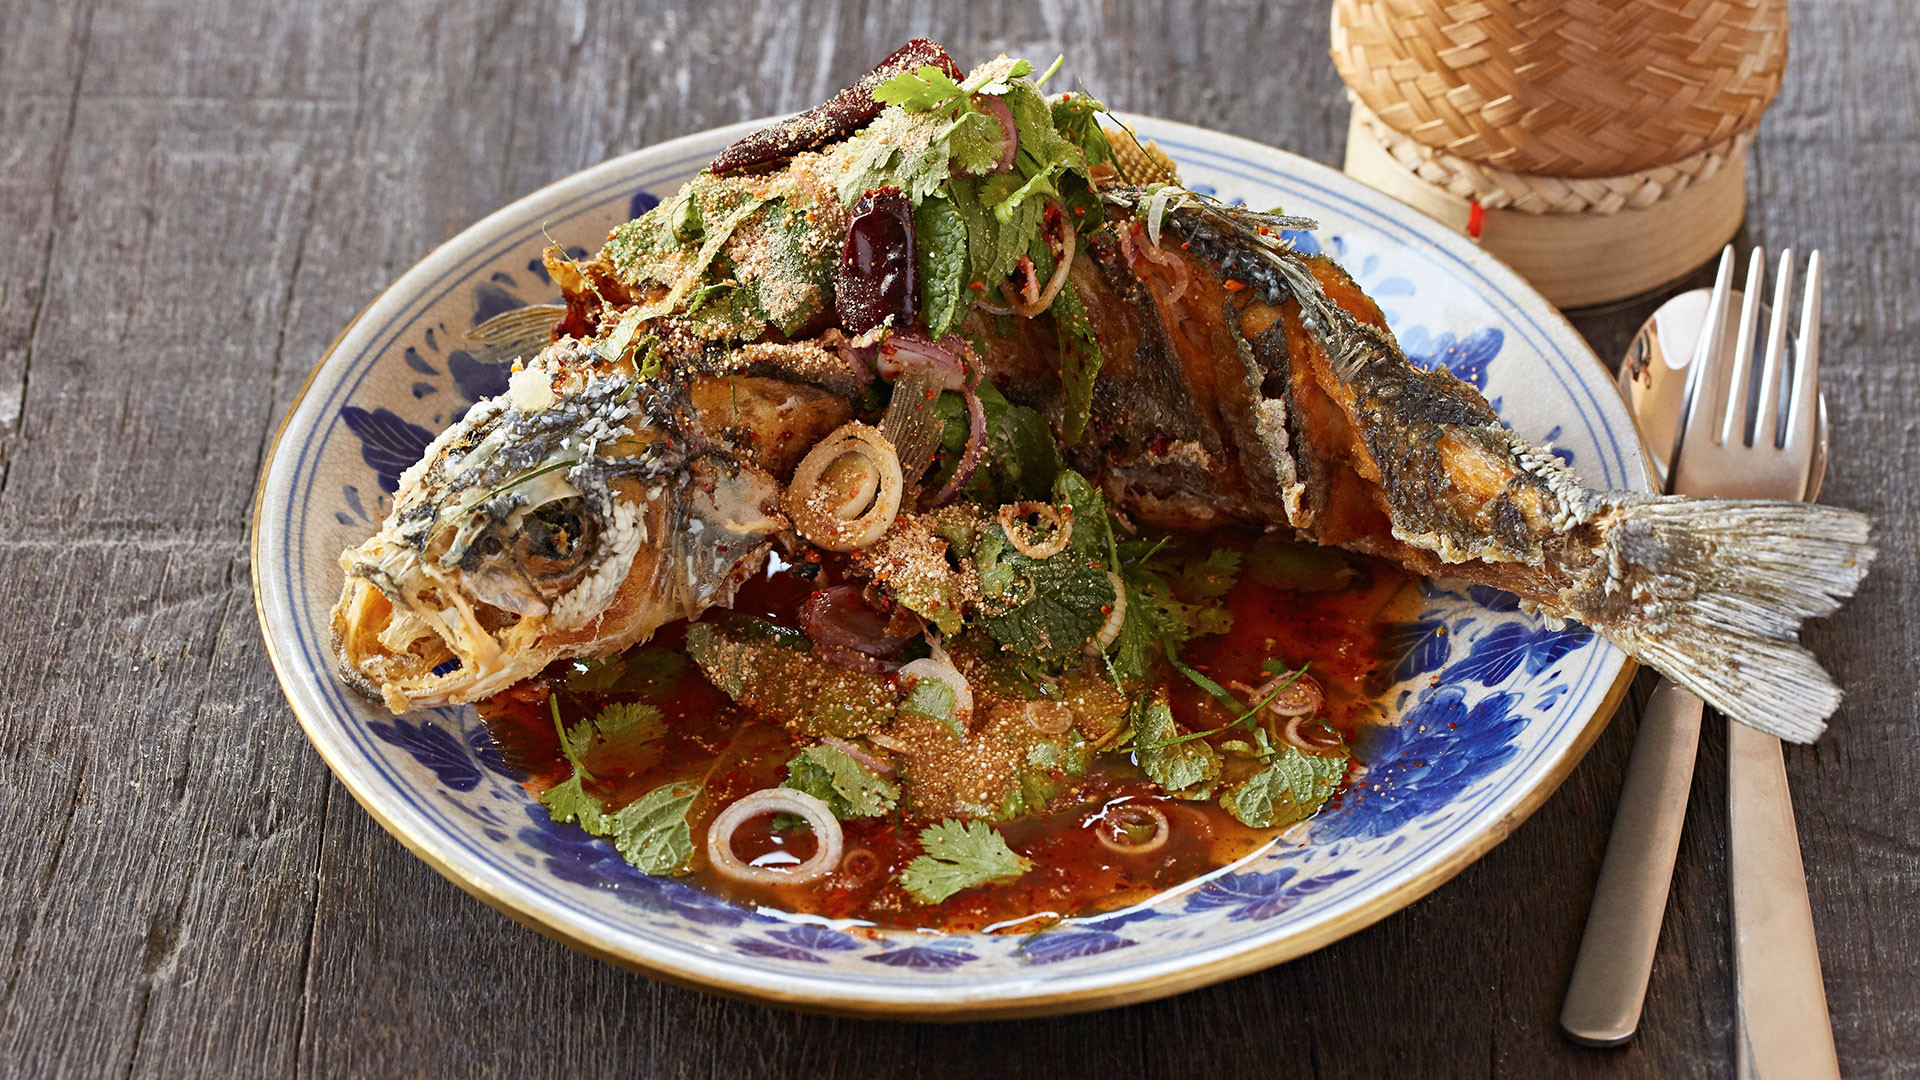 Som Saa's whole deep-fried sea bass